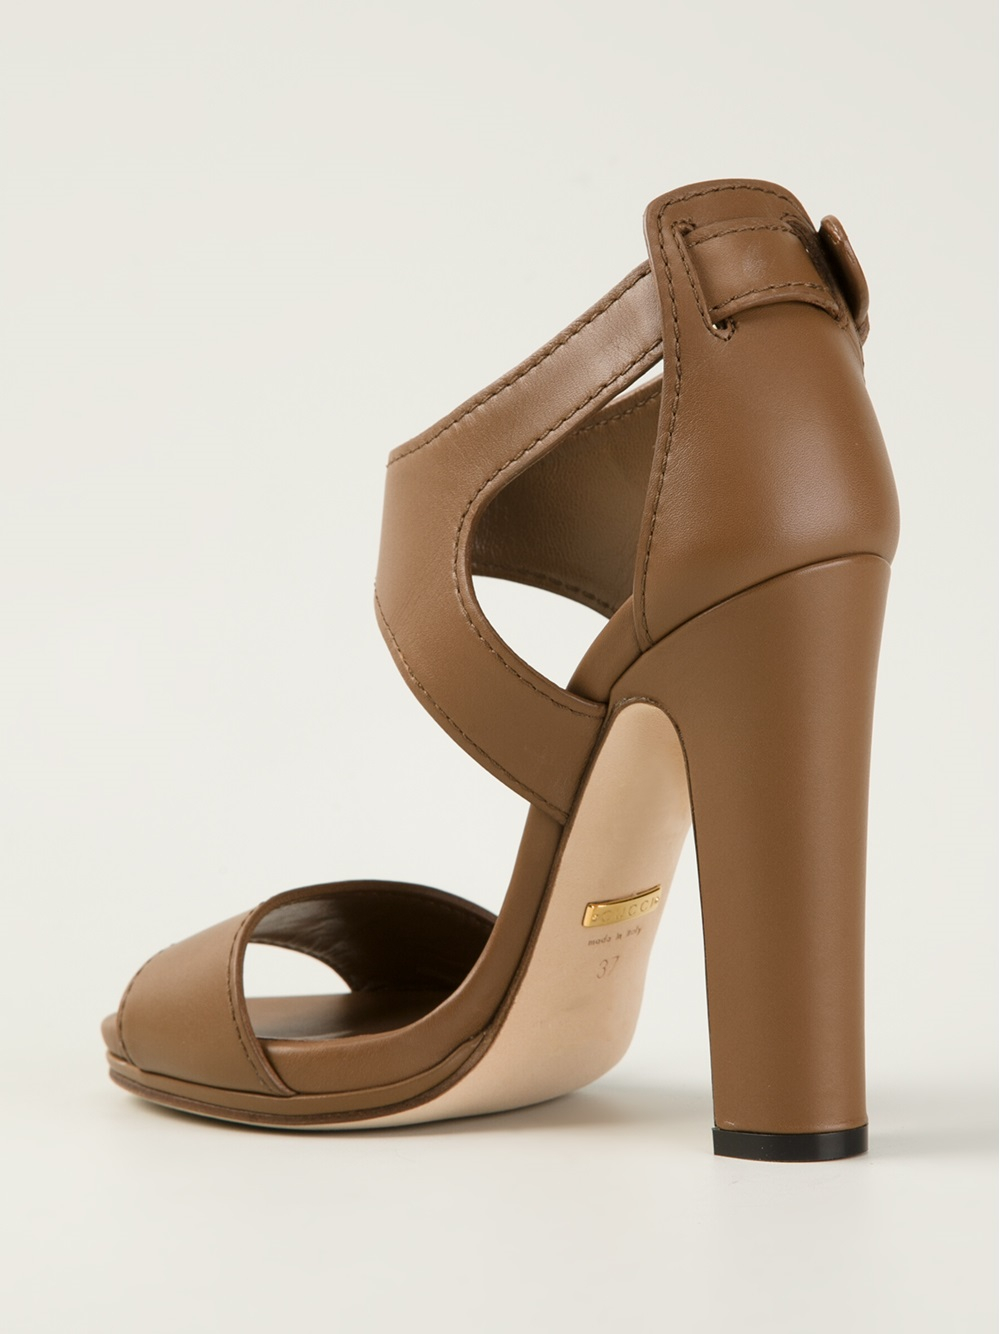 Gucci Chunky Heel Sandals in Natural | Lyst